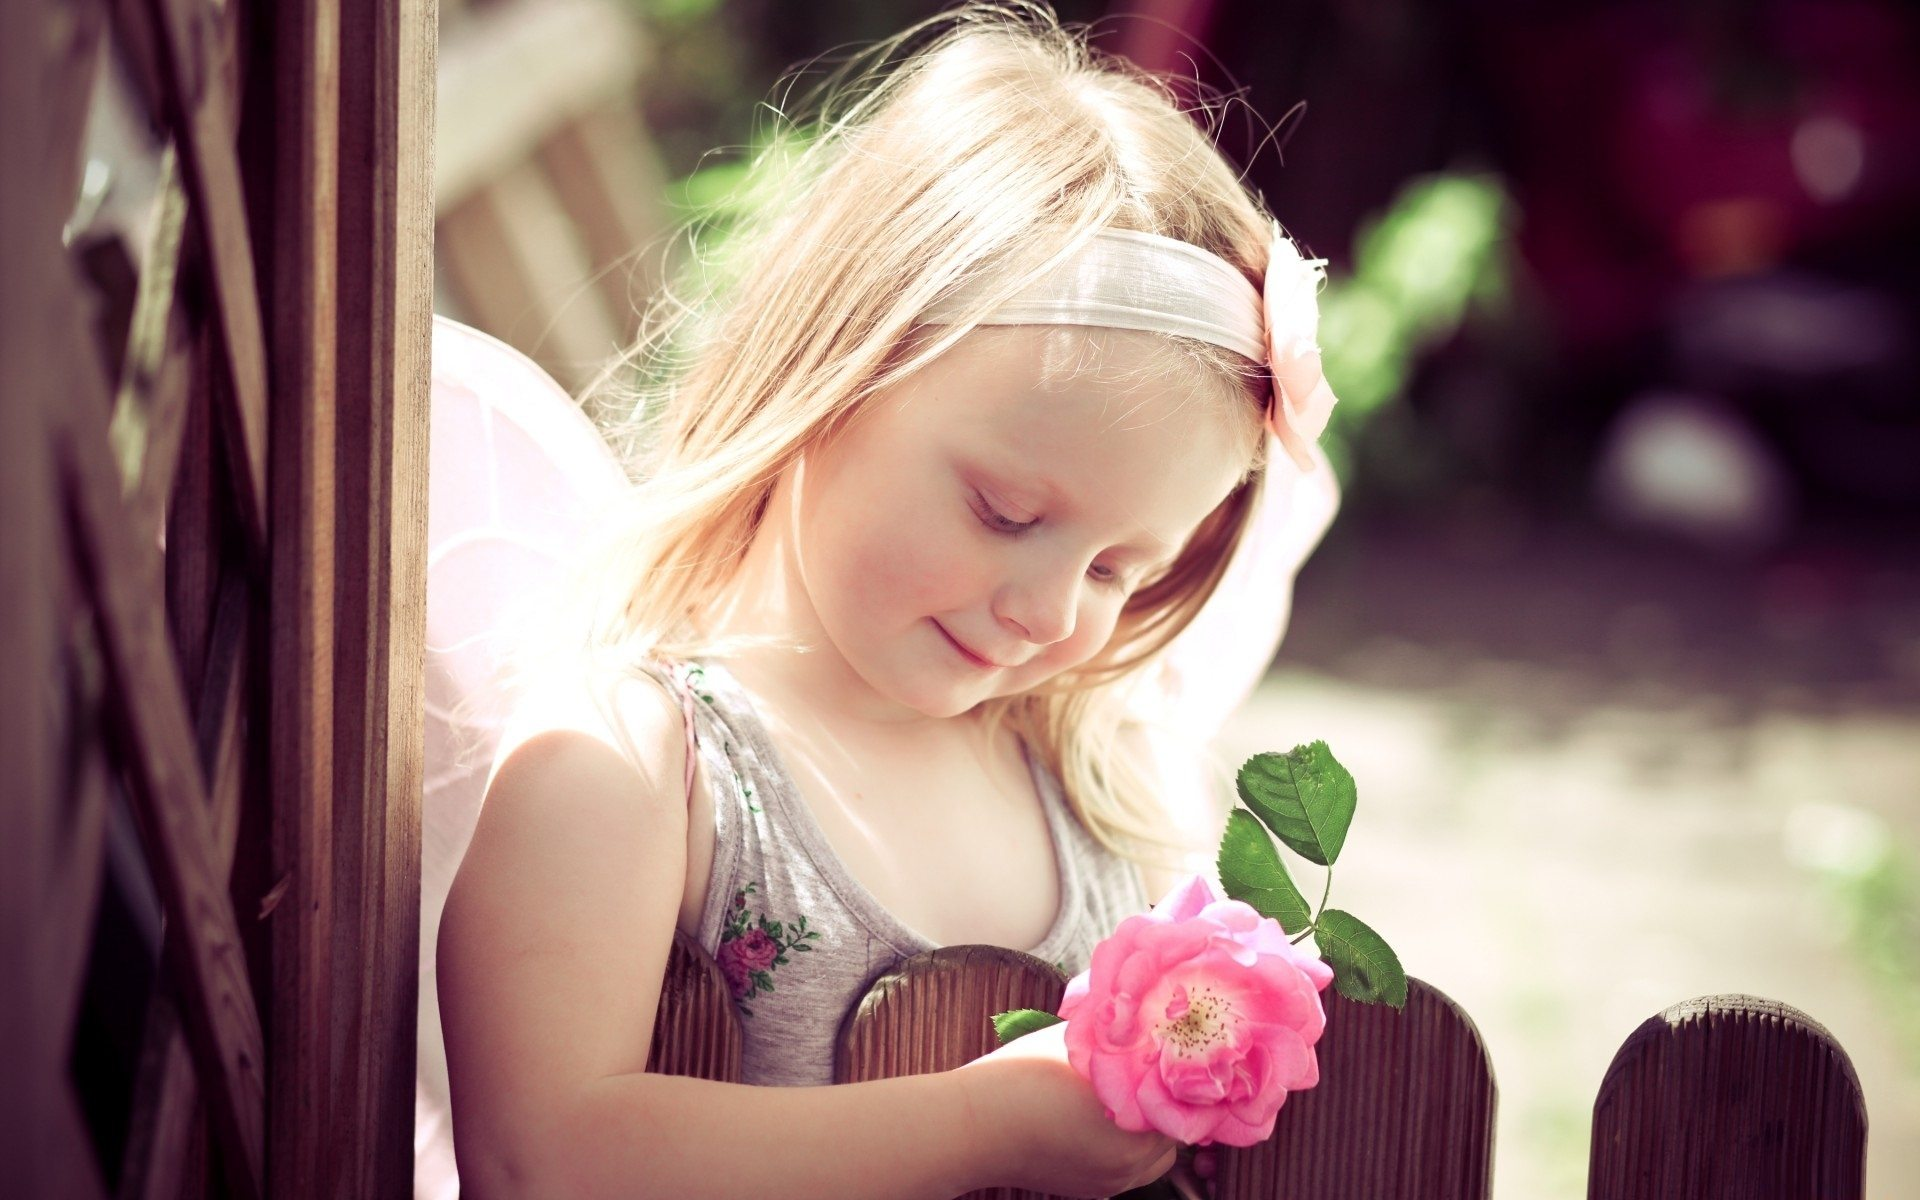 cute_girl_holding_pink_rose-1920x1200